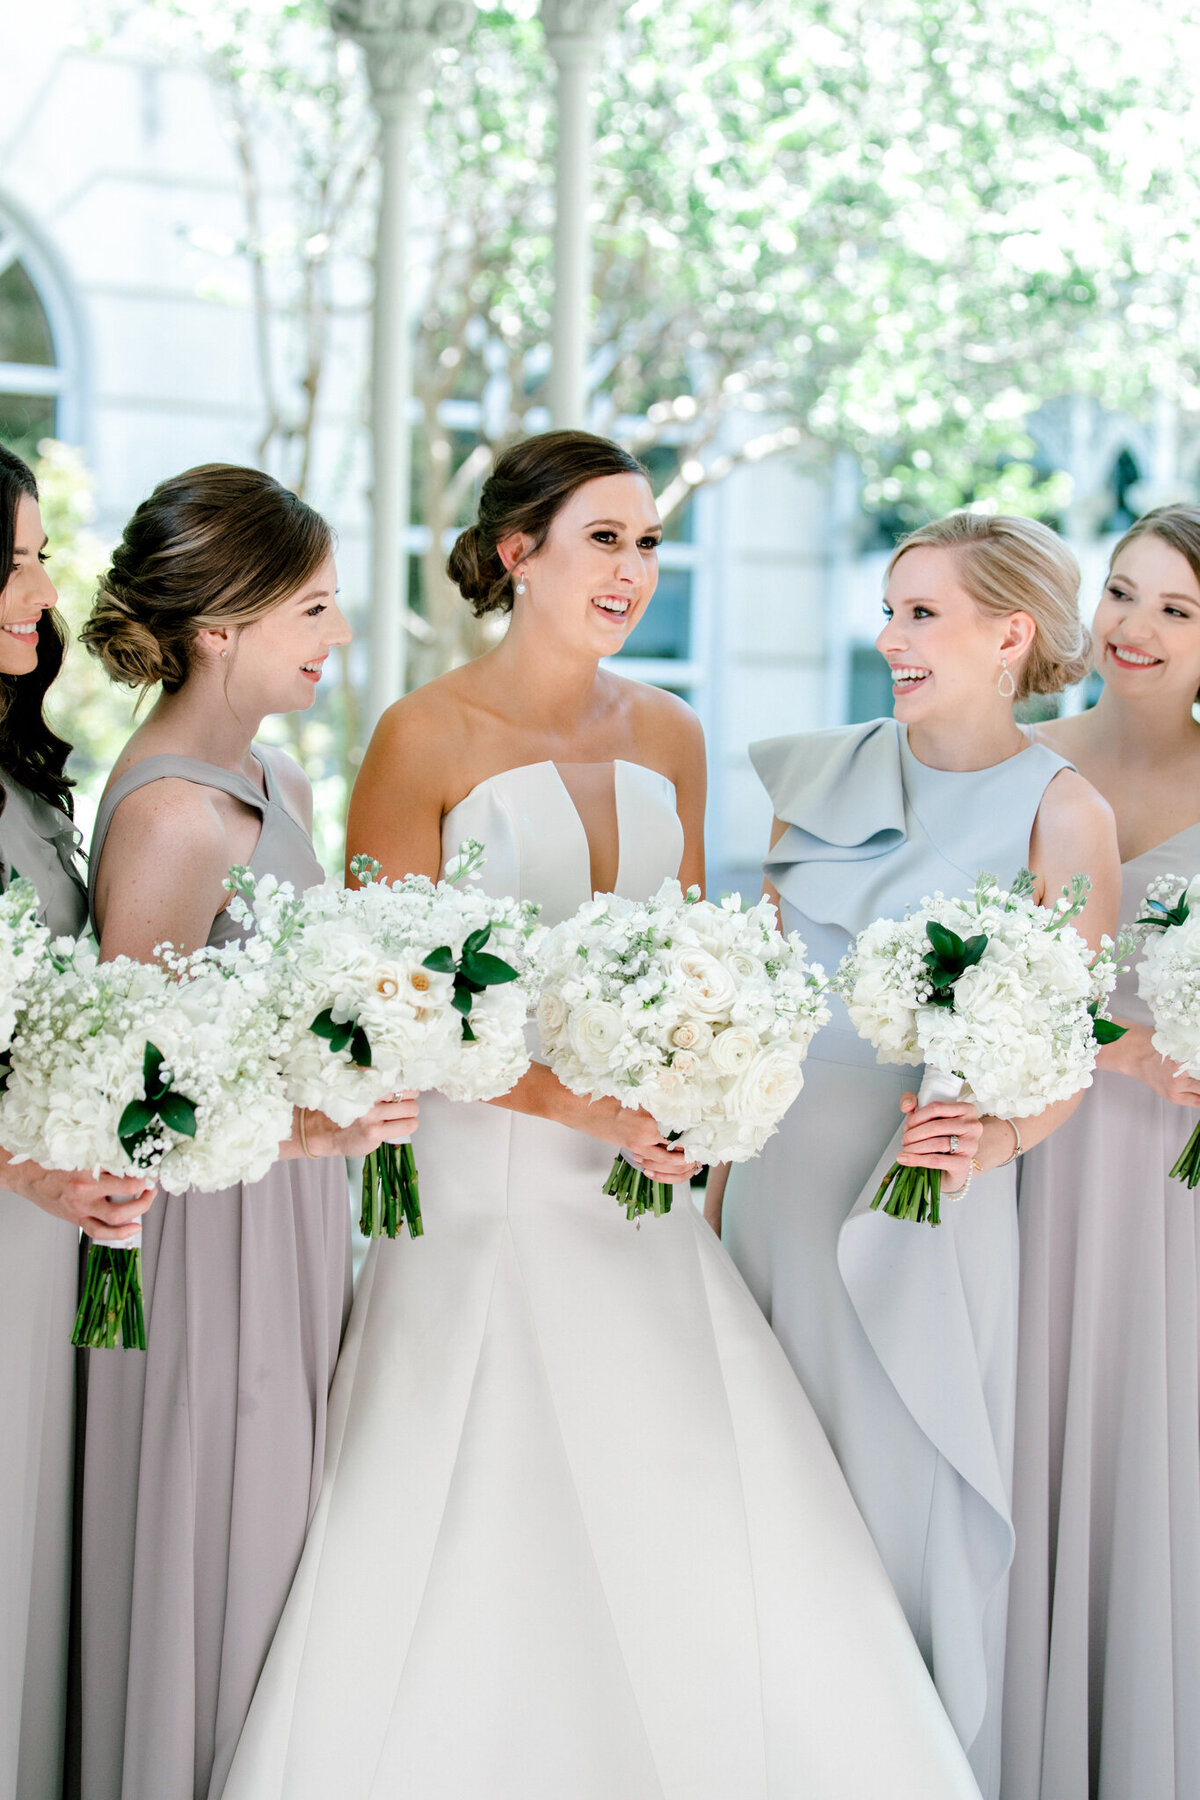 Wedding at the Crescent Court Hotel and Highland Park United Methodist Church in Dallas | Sami Kathryn Photography | DFW Wedding Photographer-71